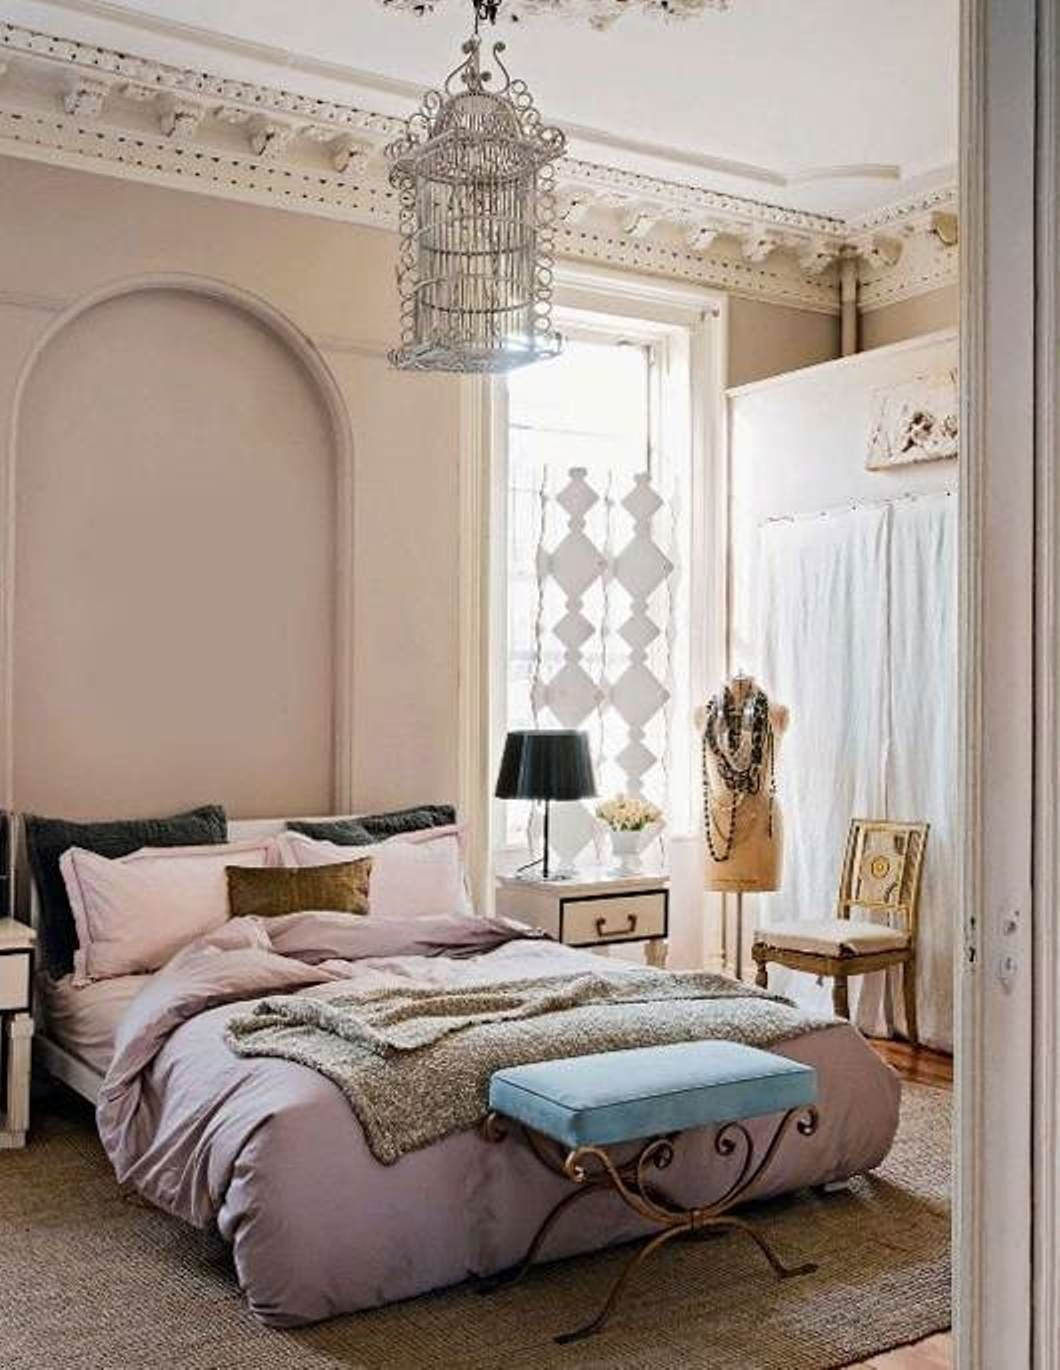 Bedroom paint ideas for young women - Perfect Bedroom Decorating Ideas For Women